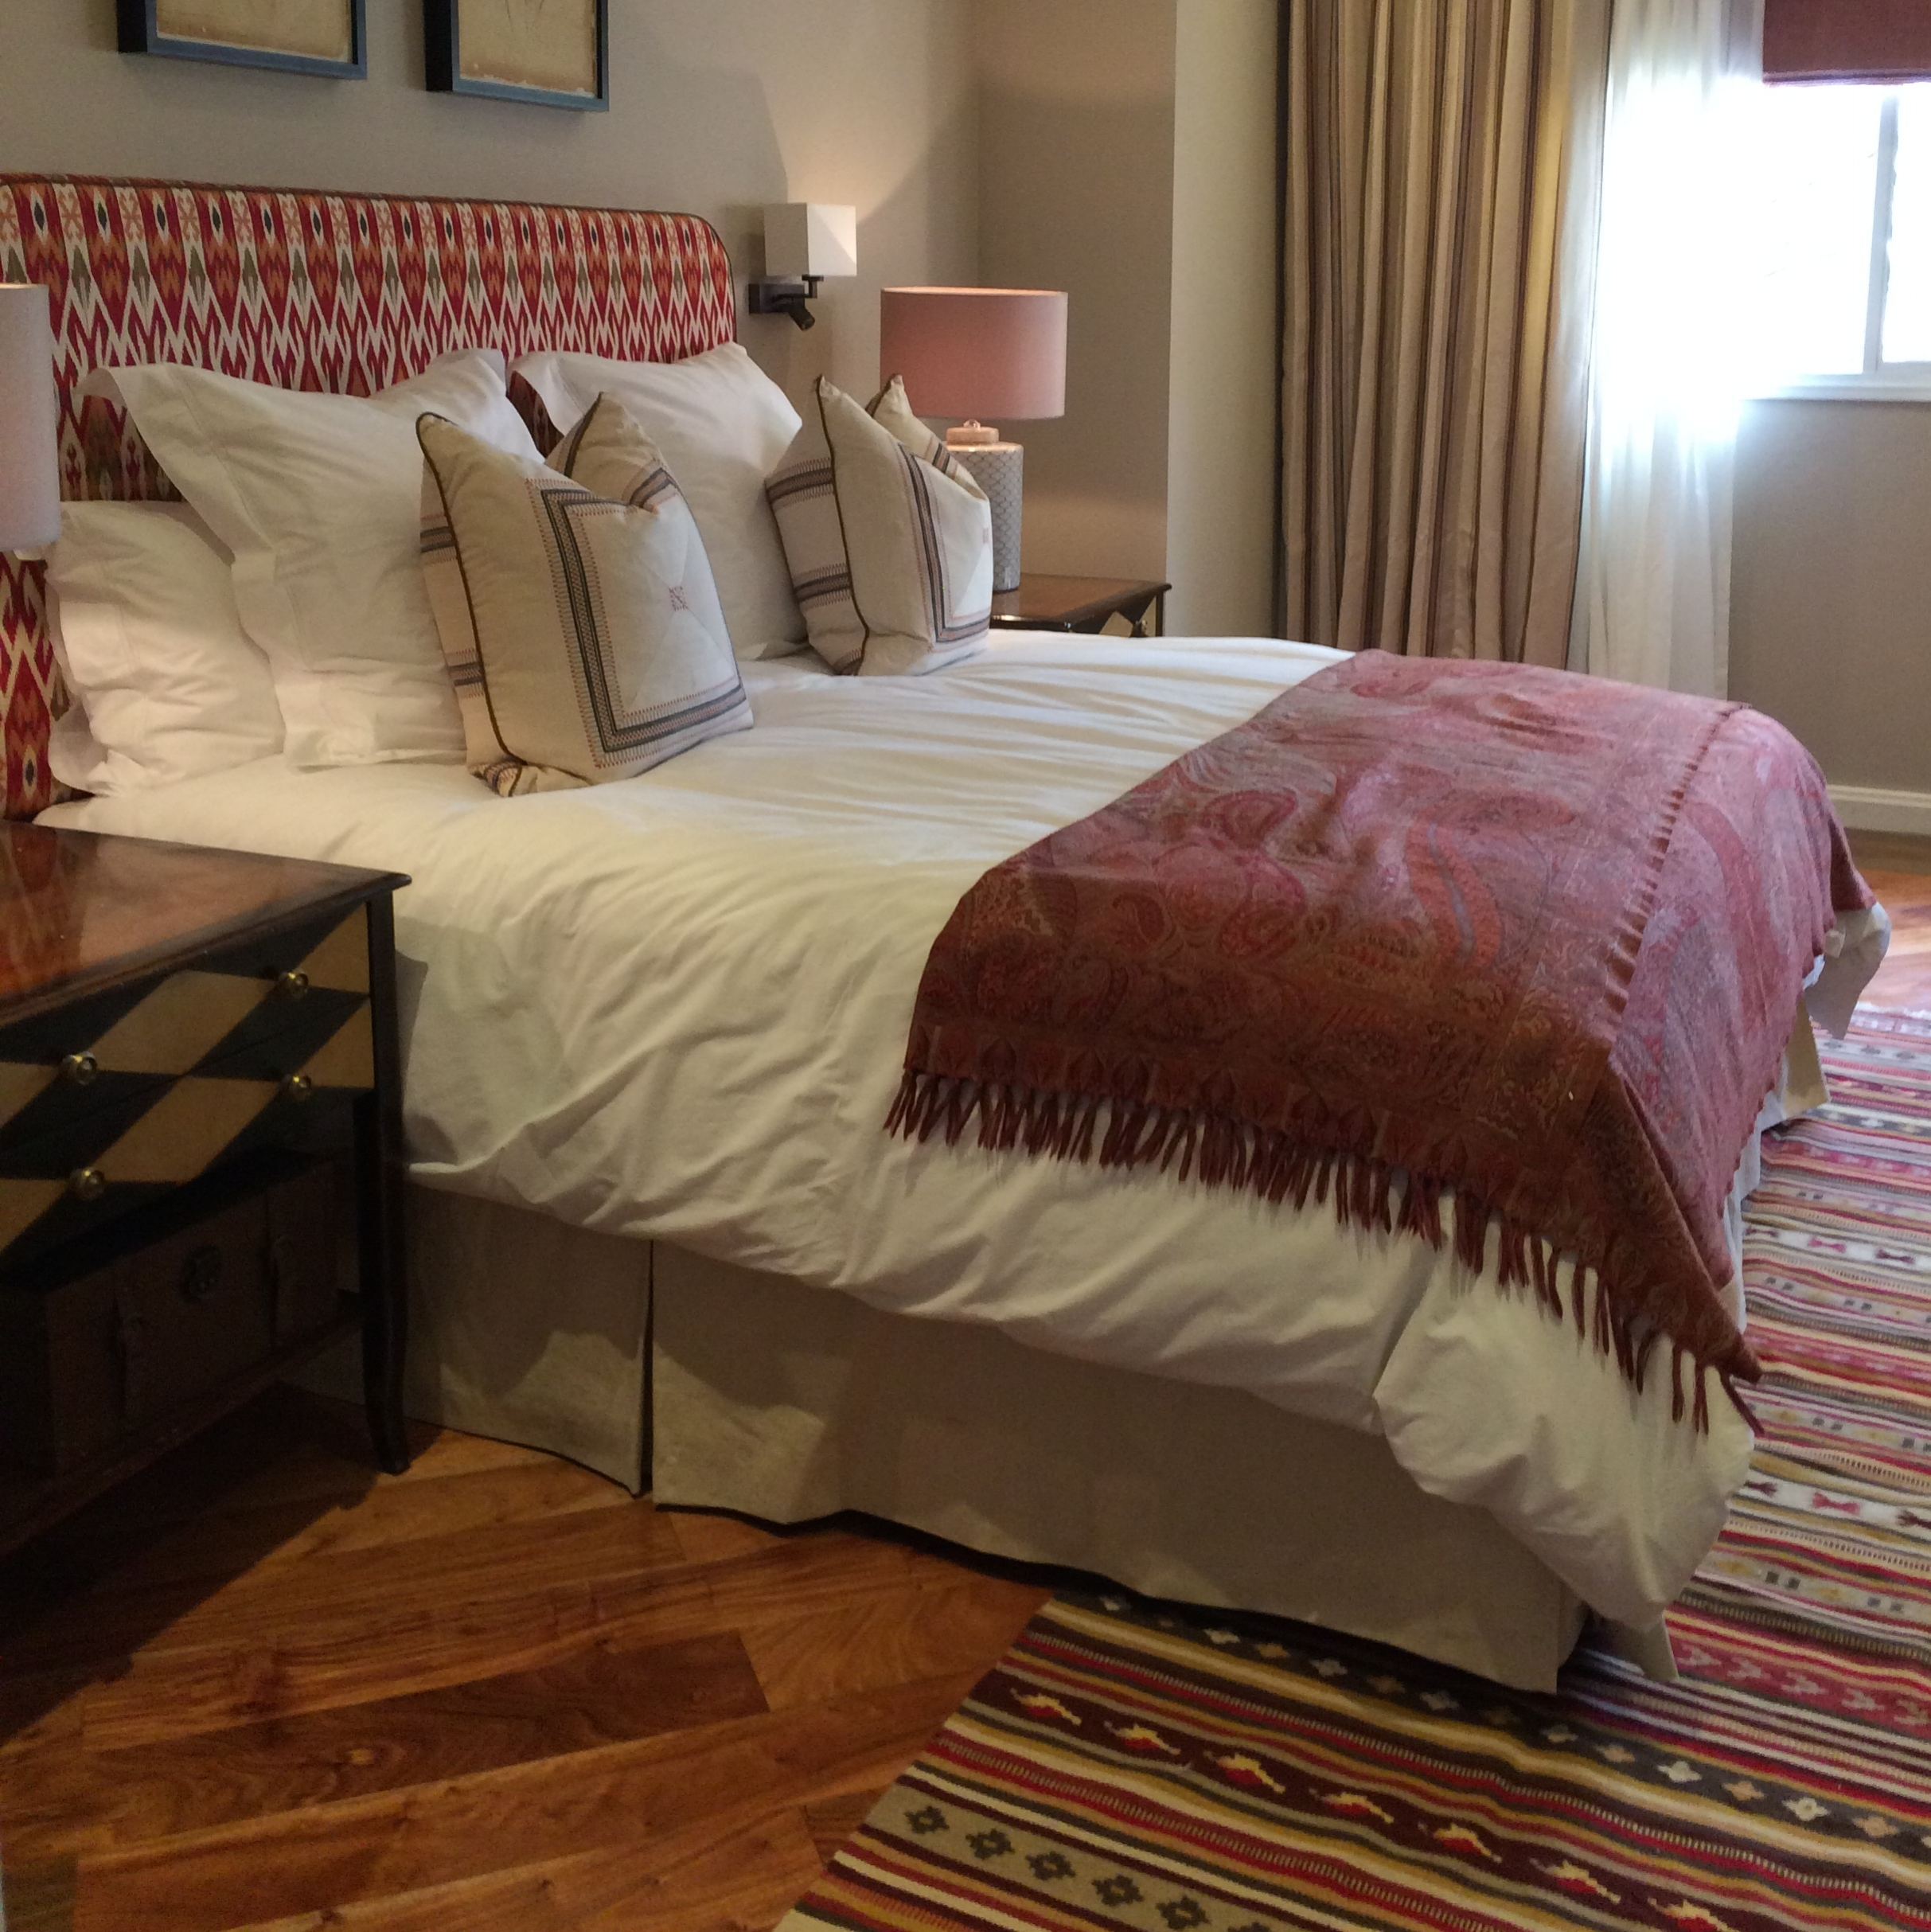 Bed valance in Romo Linara by Pippa Rolls Limited.jpg